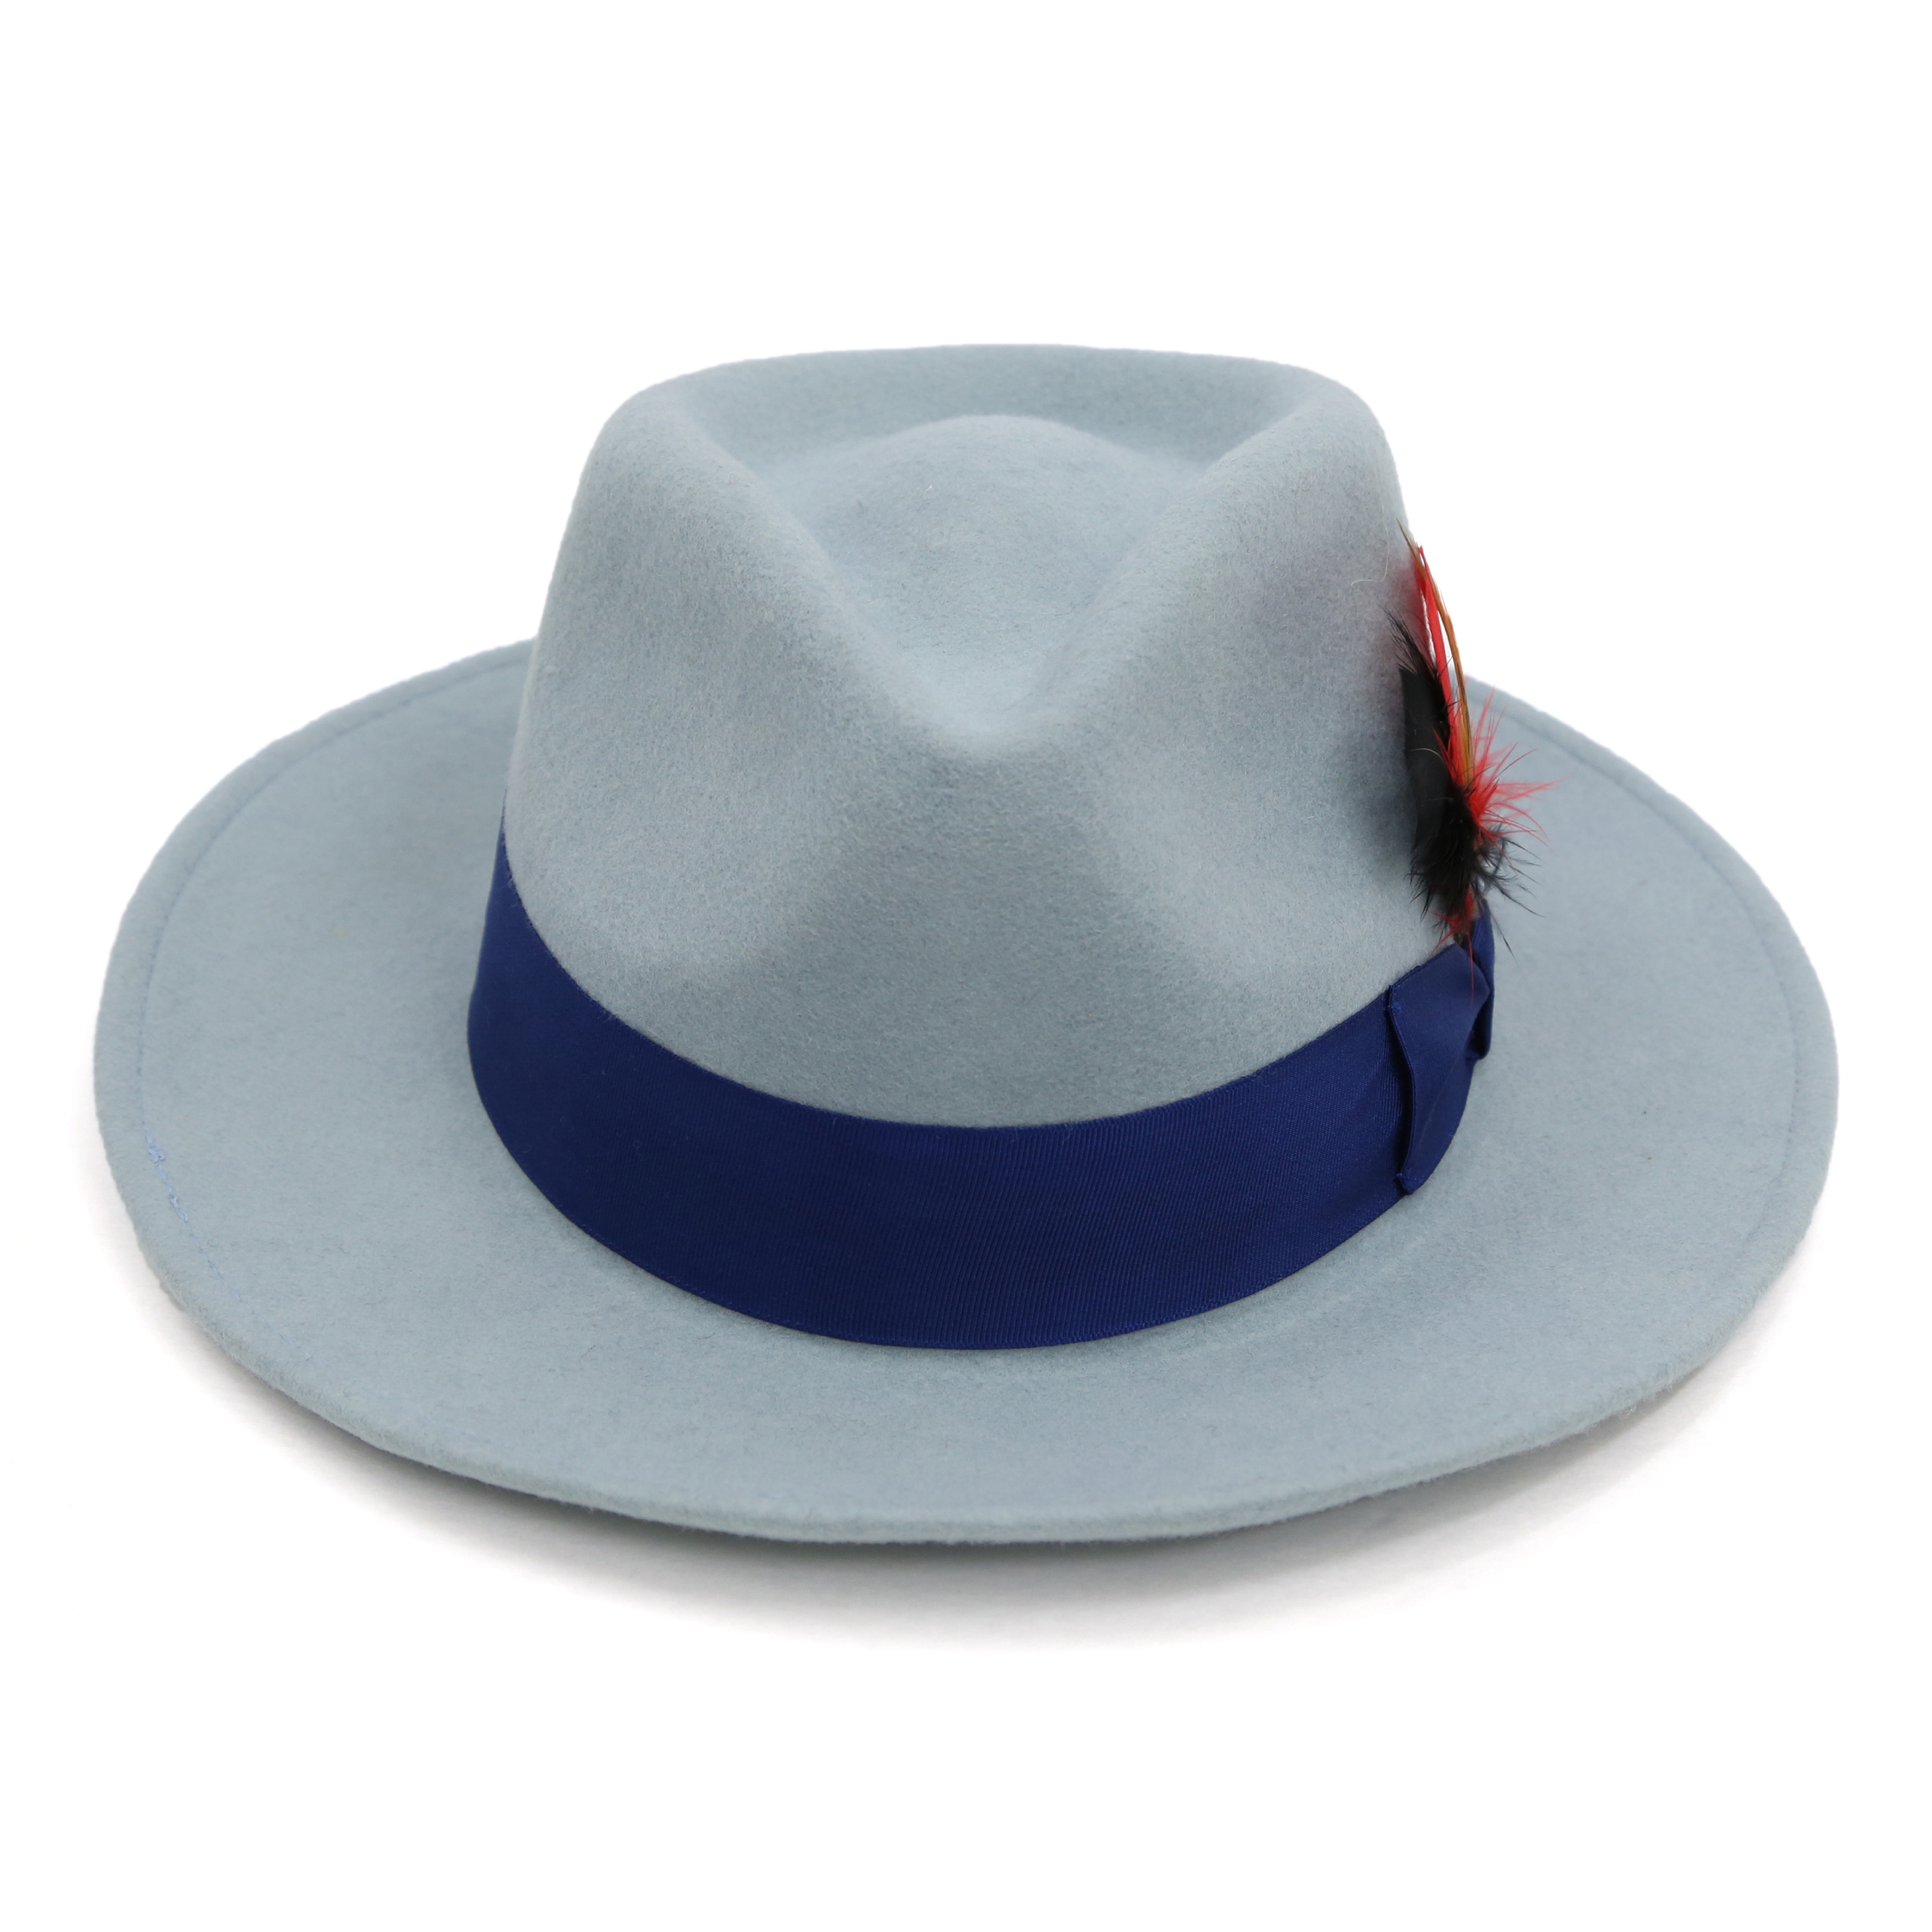 Shop ferrecci mens blue lined wool royal blue band fedora hat free shipping  on orders over 56251016765a